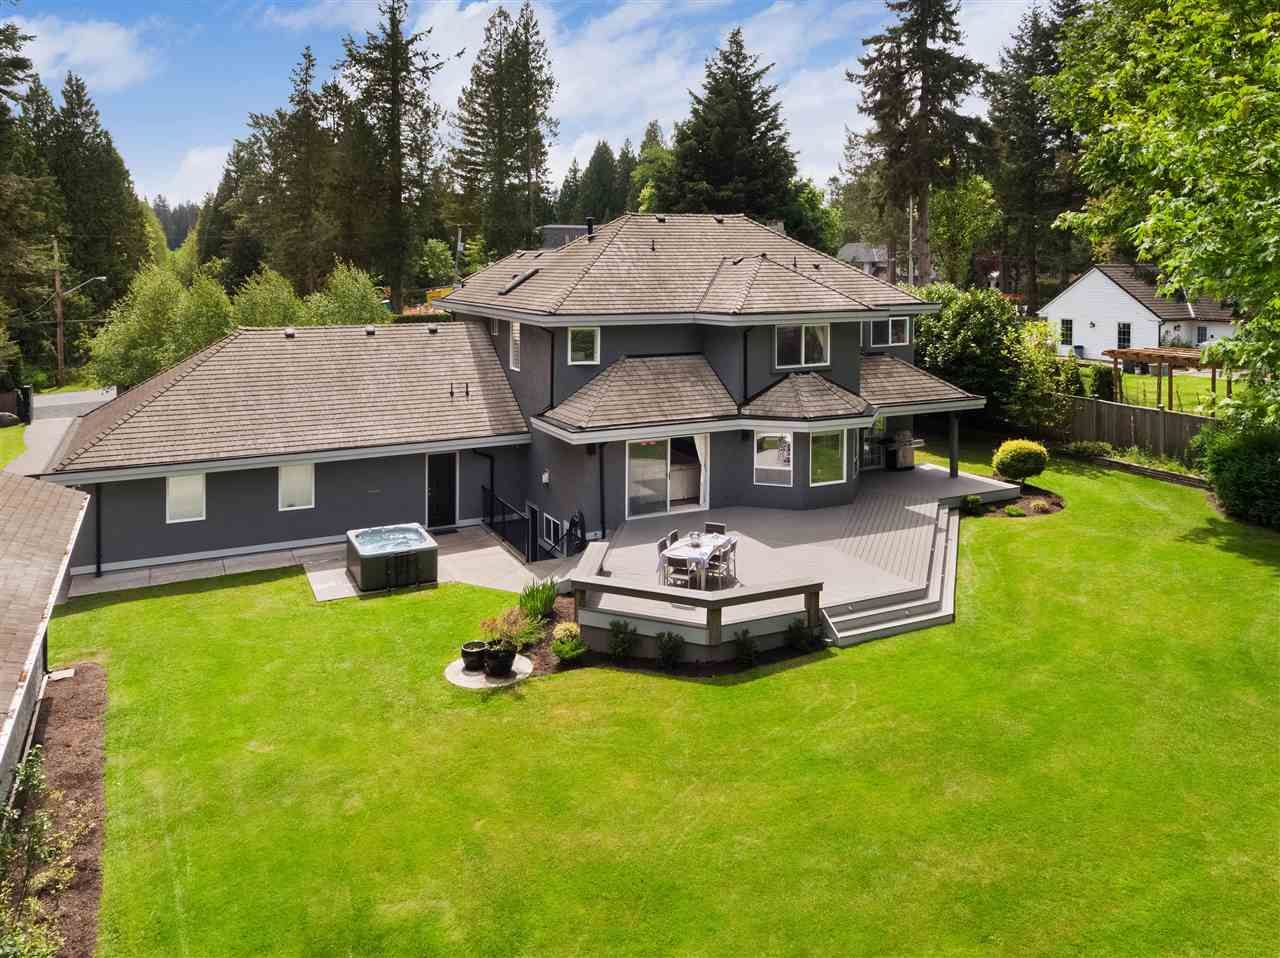 """Main Photo: 13877 32 Avenue in Surrey: Elgin Chantrell House for sale in """"BAYVIEW ESTATES"""" (South Surrey White Rock)  : MLS®# R2588573"""